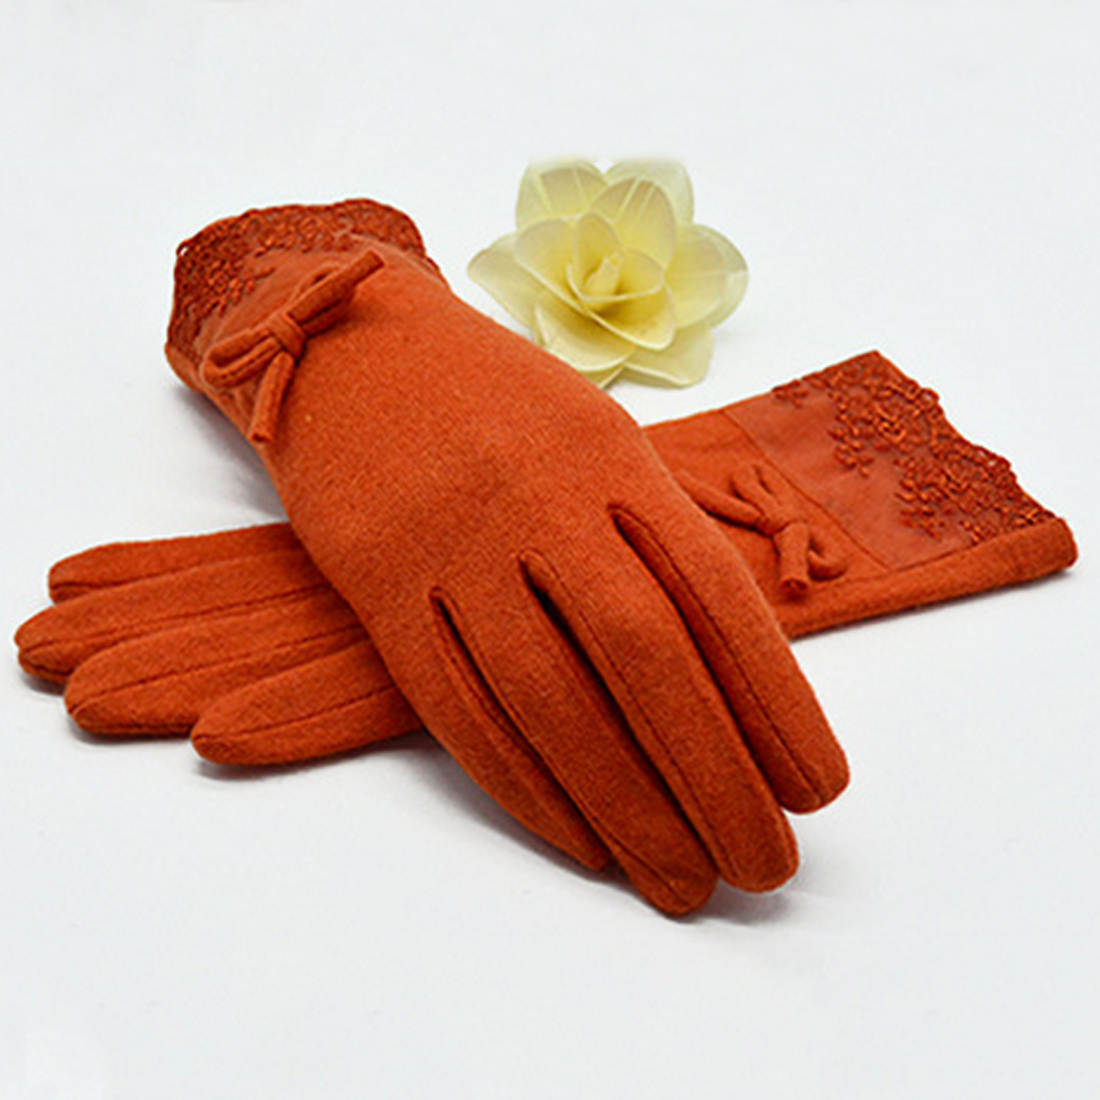 New Wool Cashmere Warm Gloves Women Winter Bow Decorations Lace Full Finger Gloves Wrist Length Mittens Female Women's Gloves